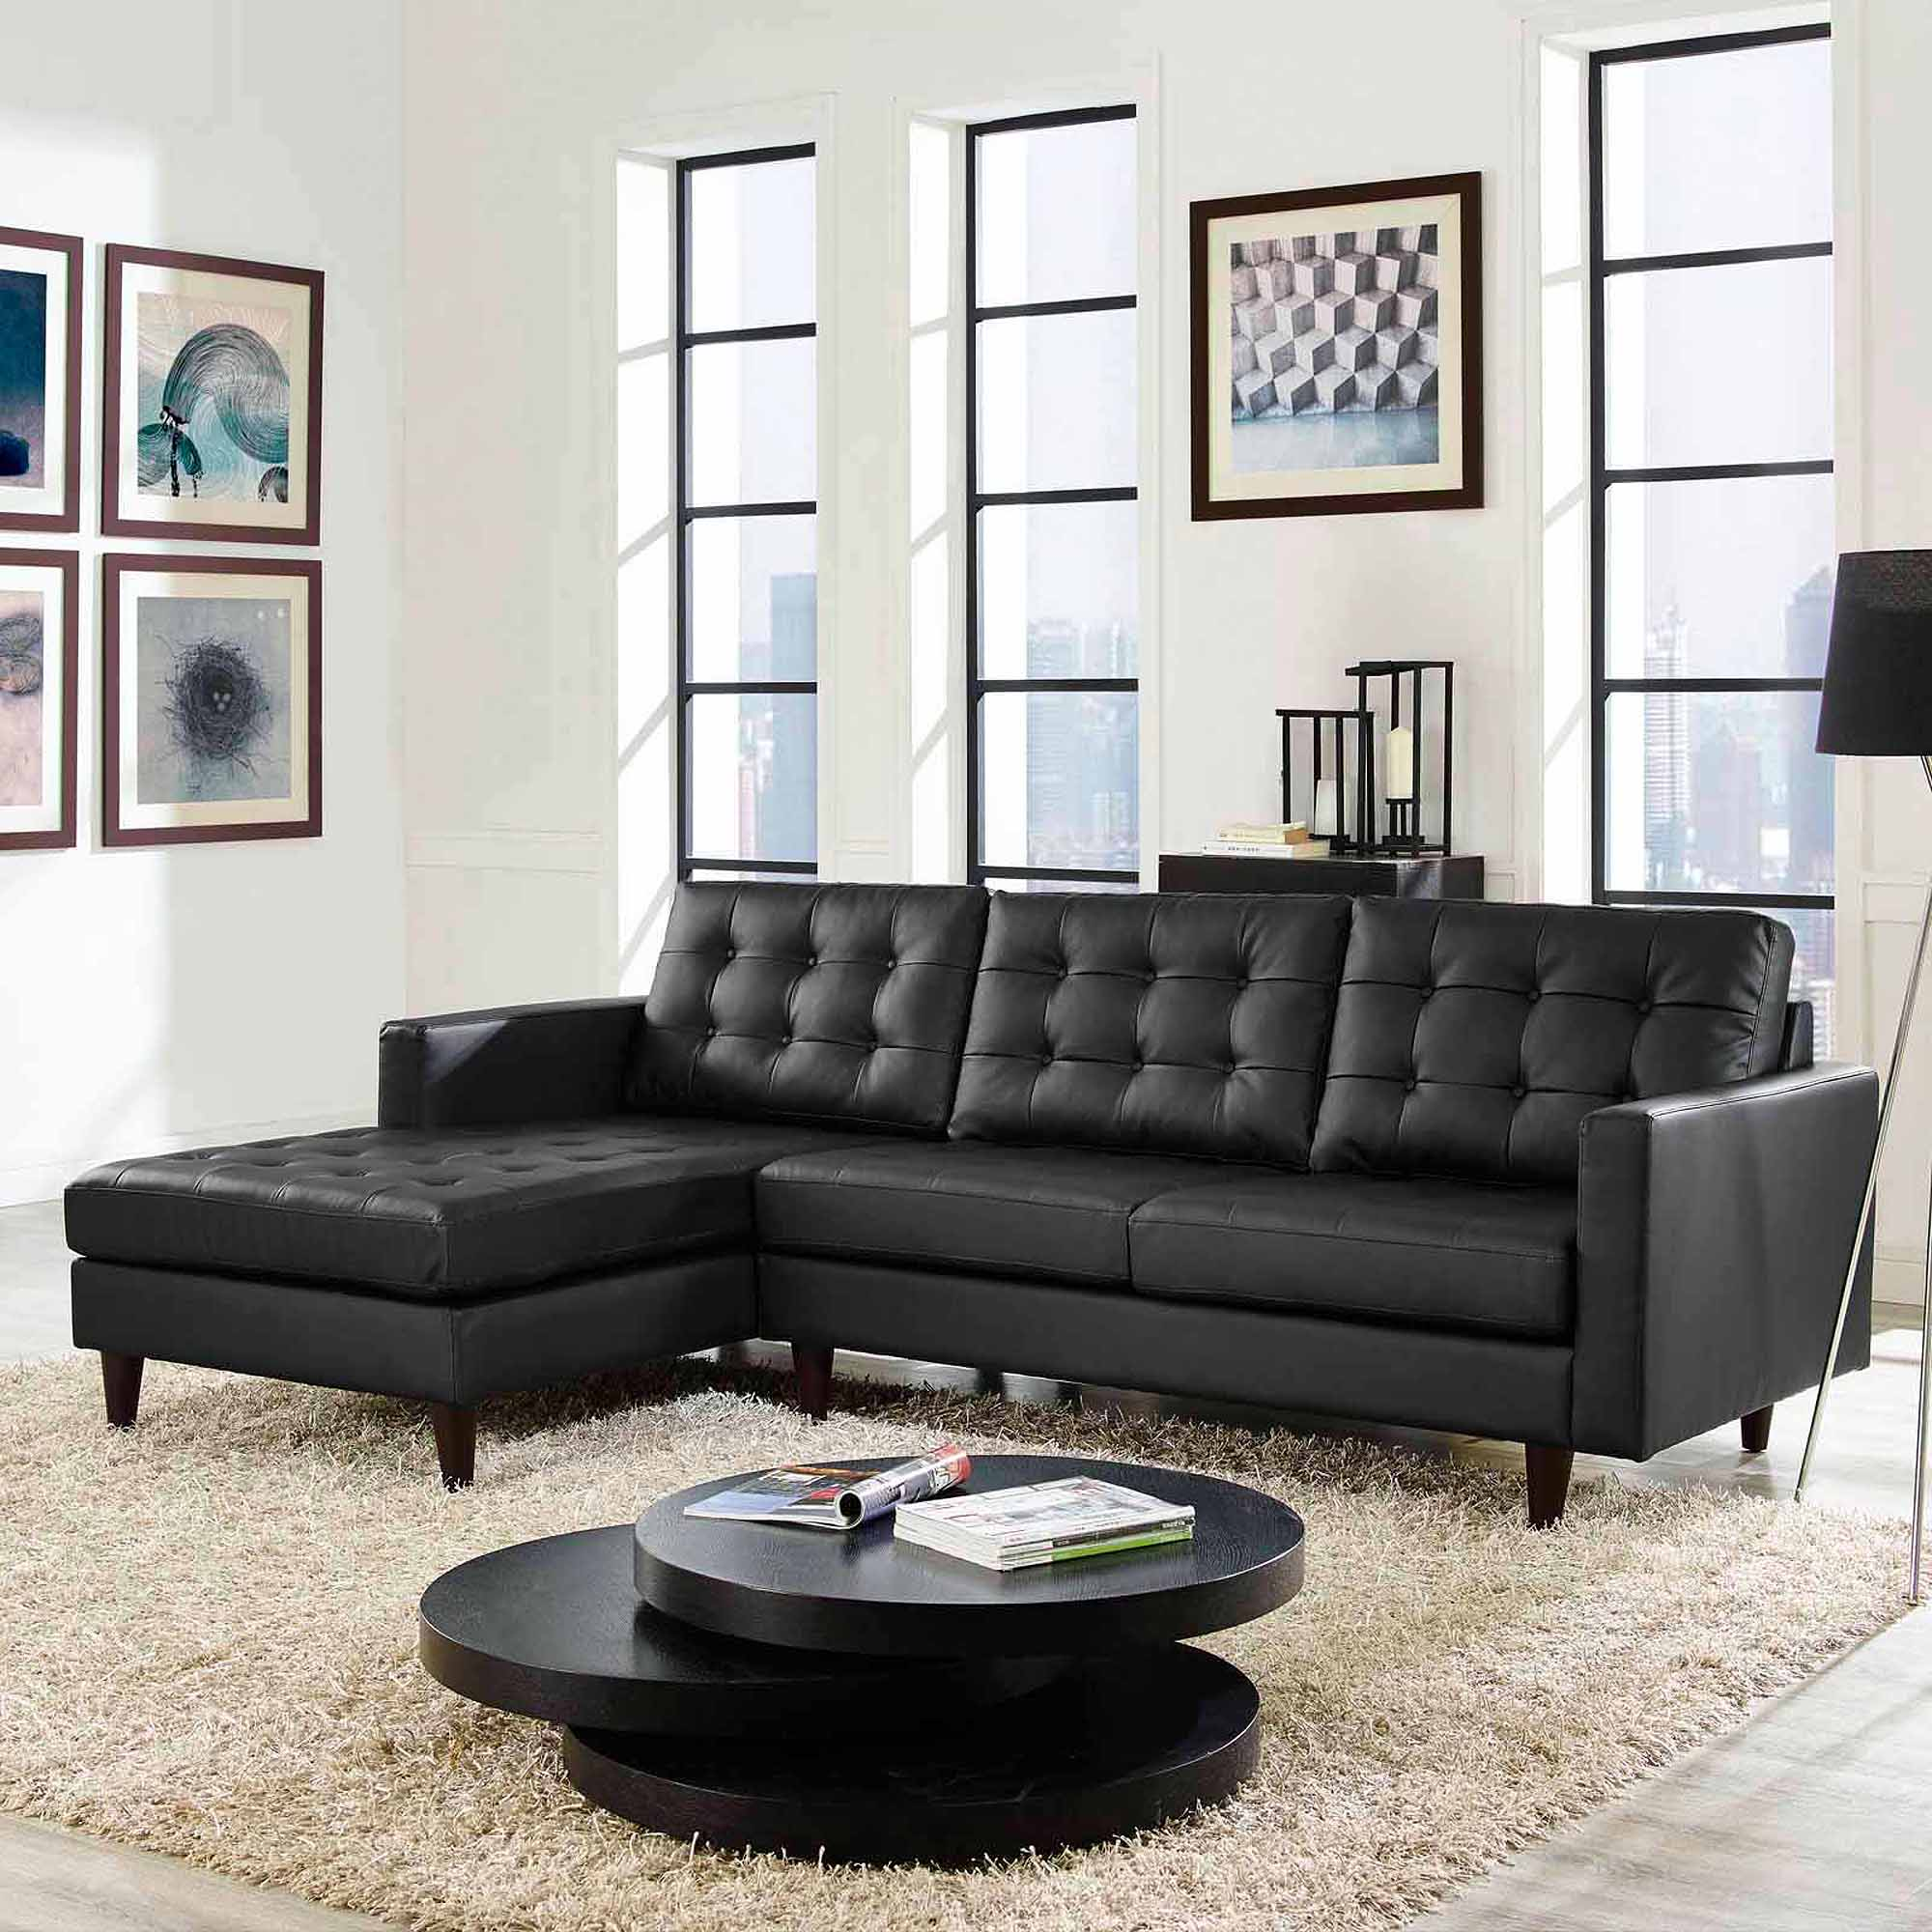 Modway Empress Left Facing Leather Sectional Sofa Multiple Colors